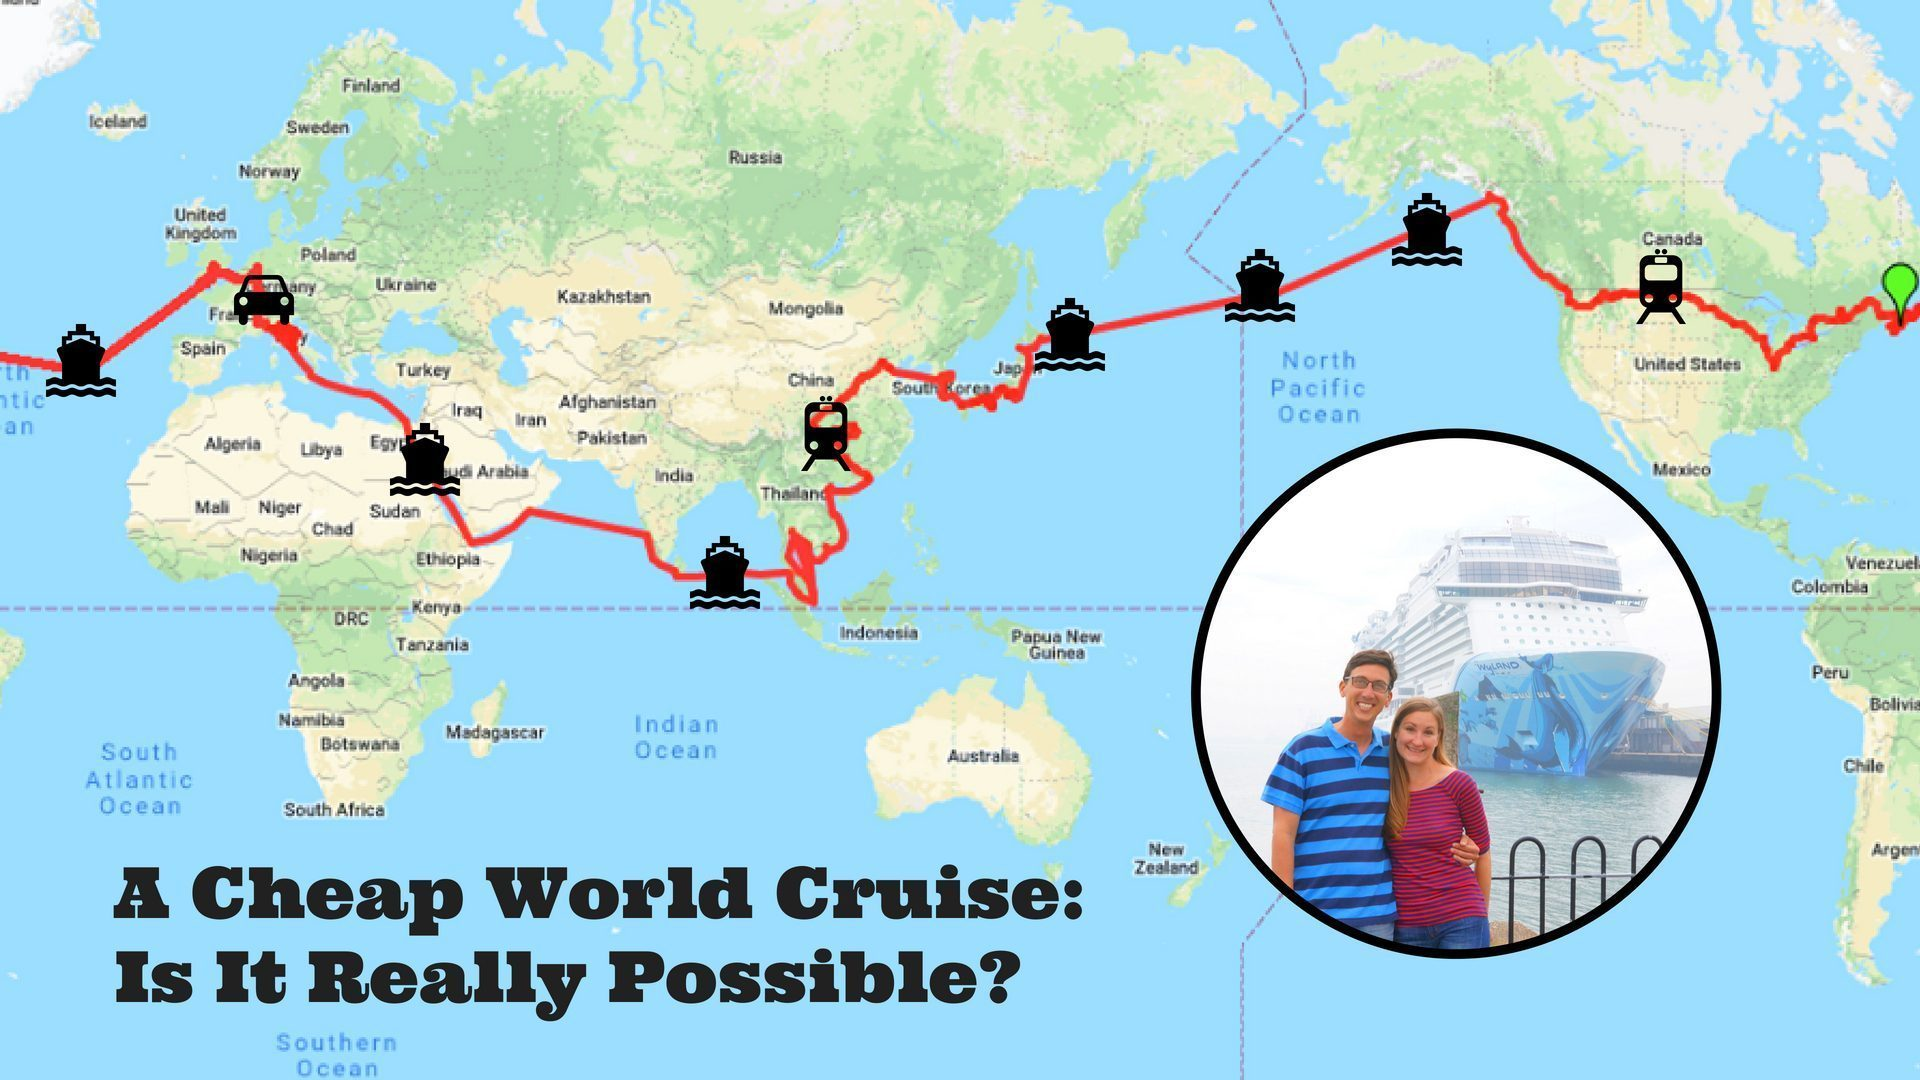 Cheap world cruise itinerary map and title